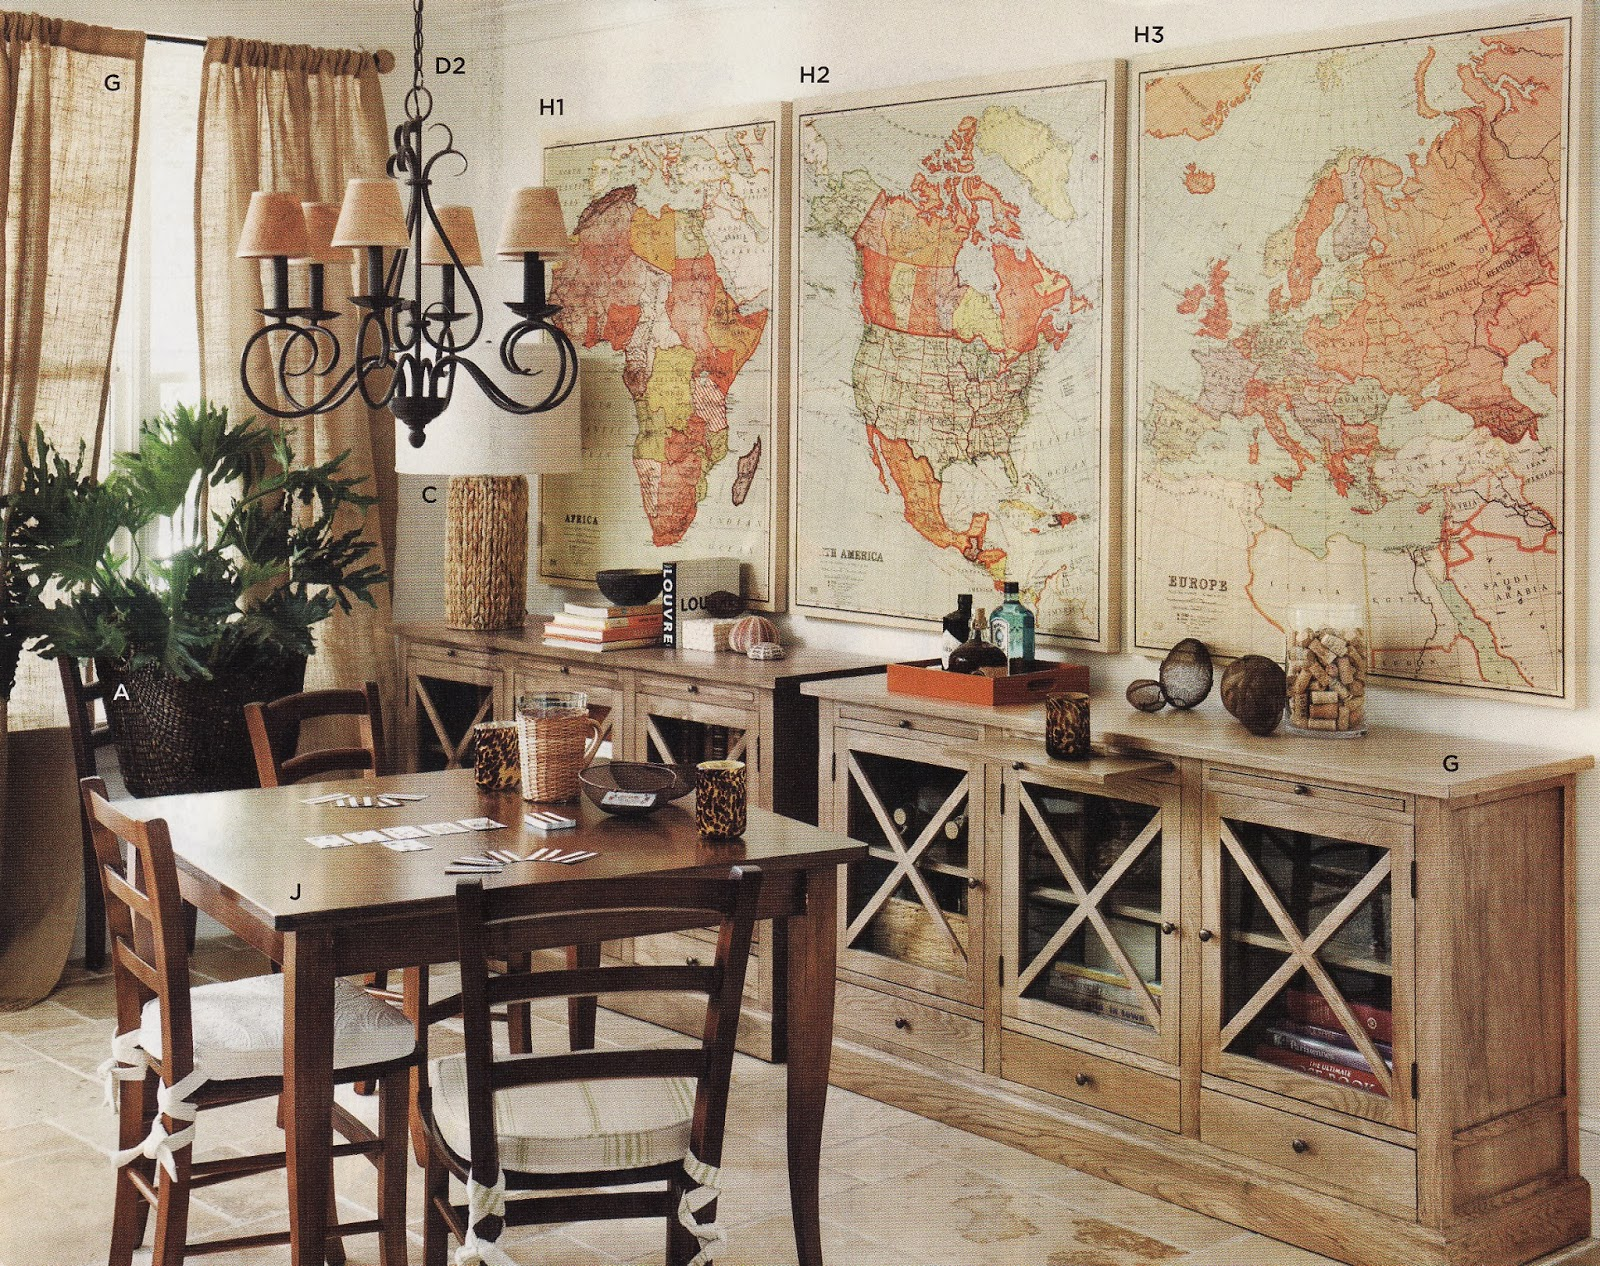 Creative juices decor oh for the love of maps home for Home decor ideas